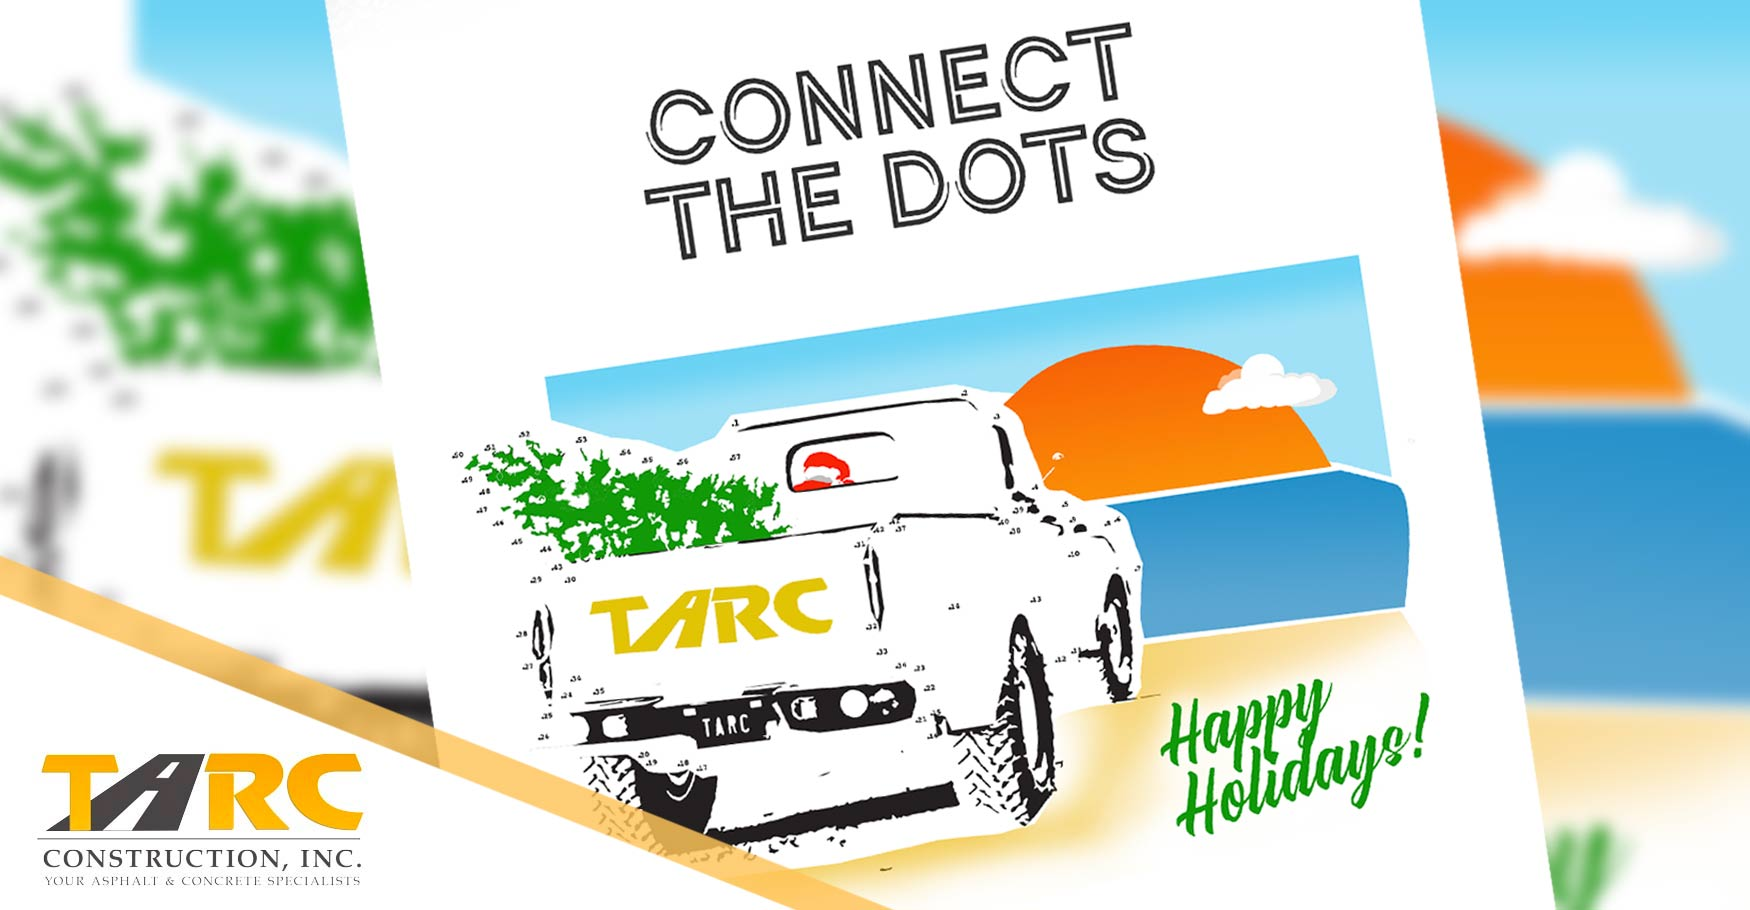 Tarc Connect the Dots